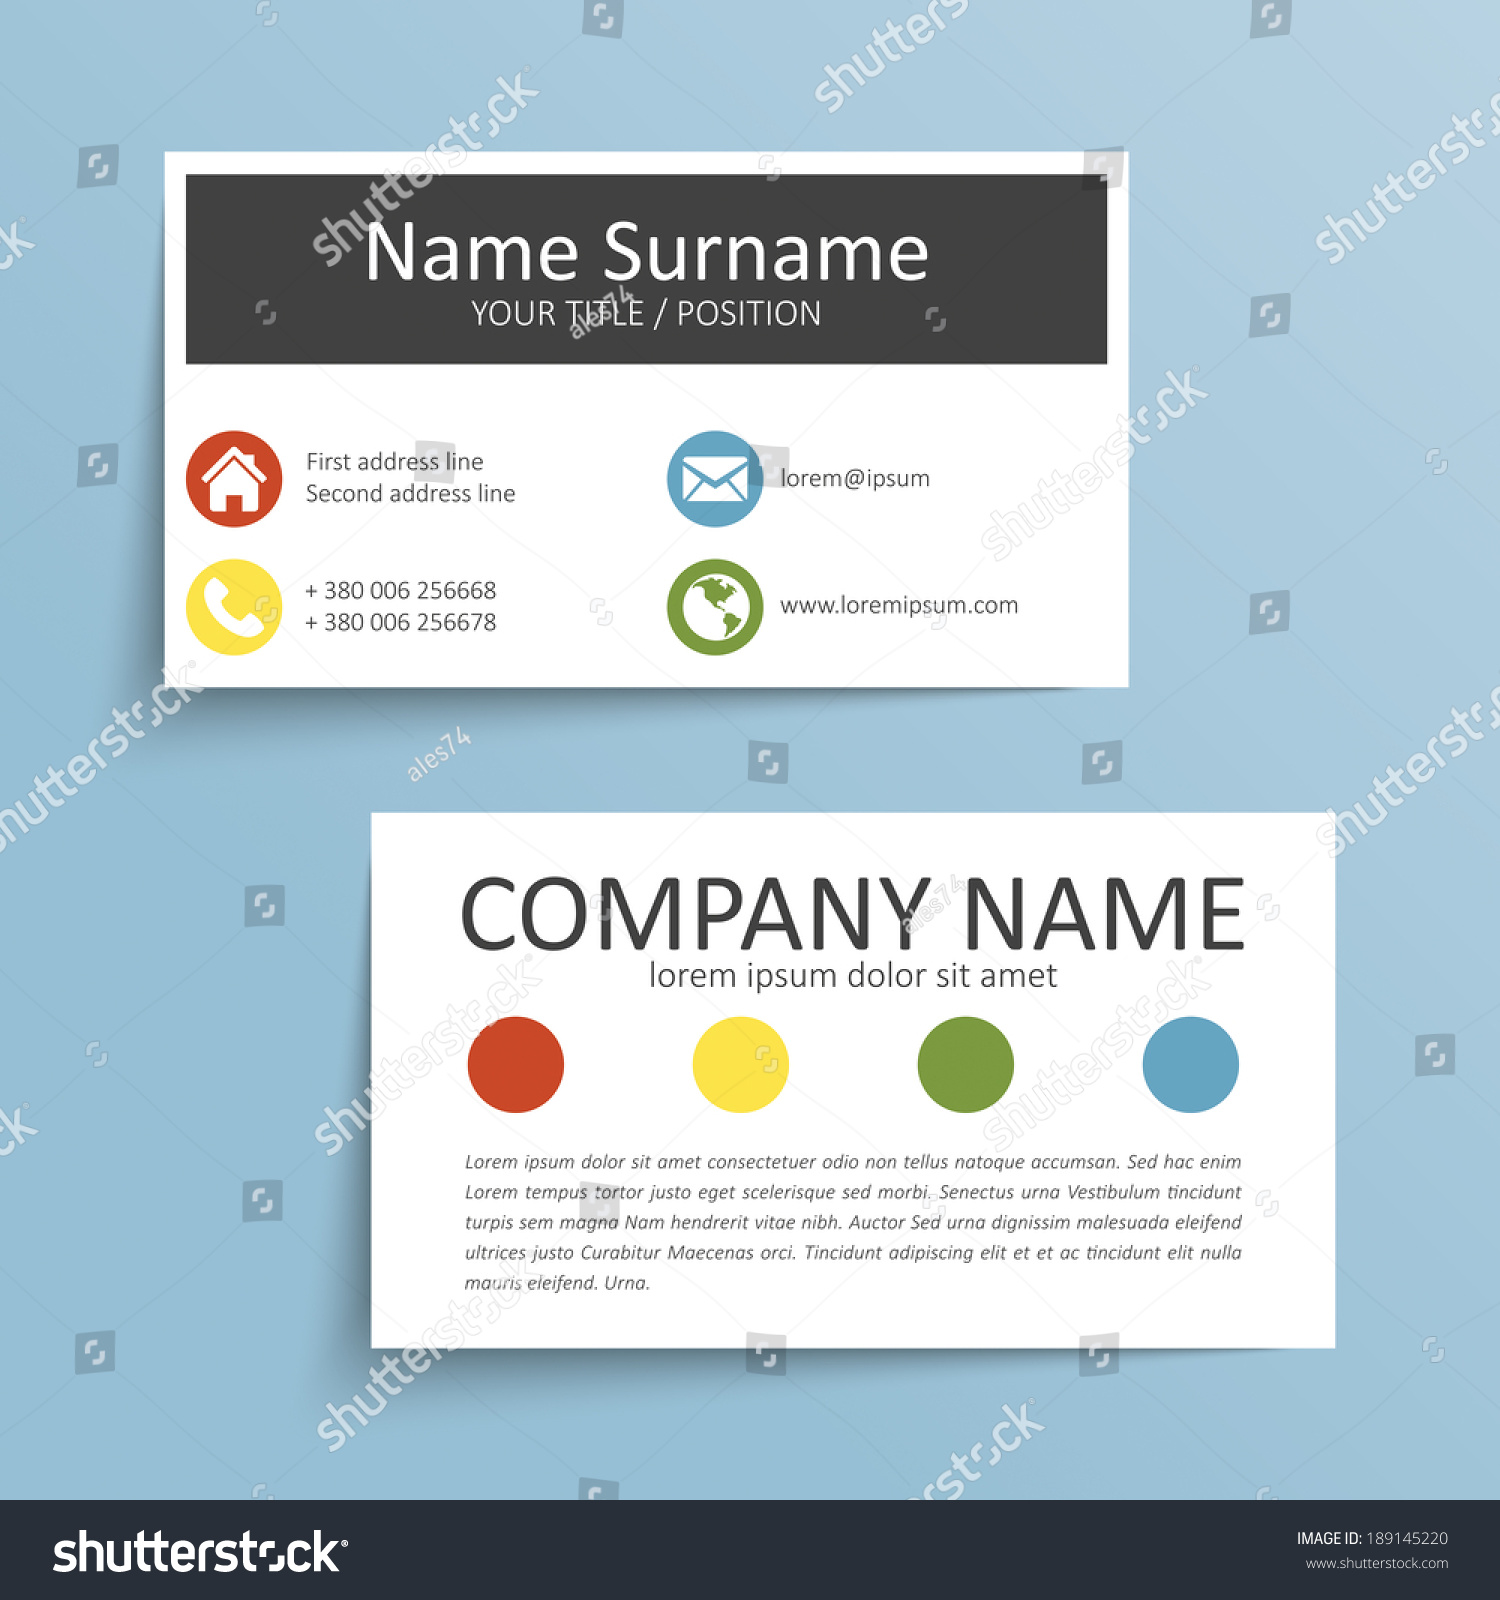 Modern simple business card vector template stock vector 189145220 modern simple business card vector template colourmoves